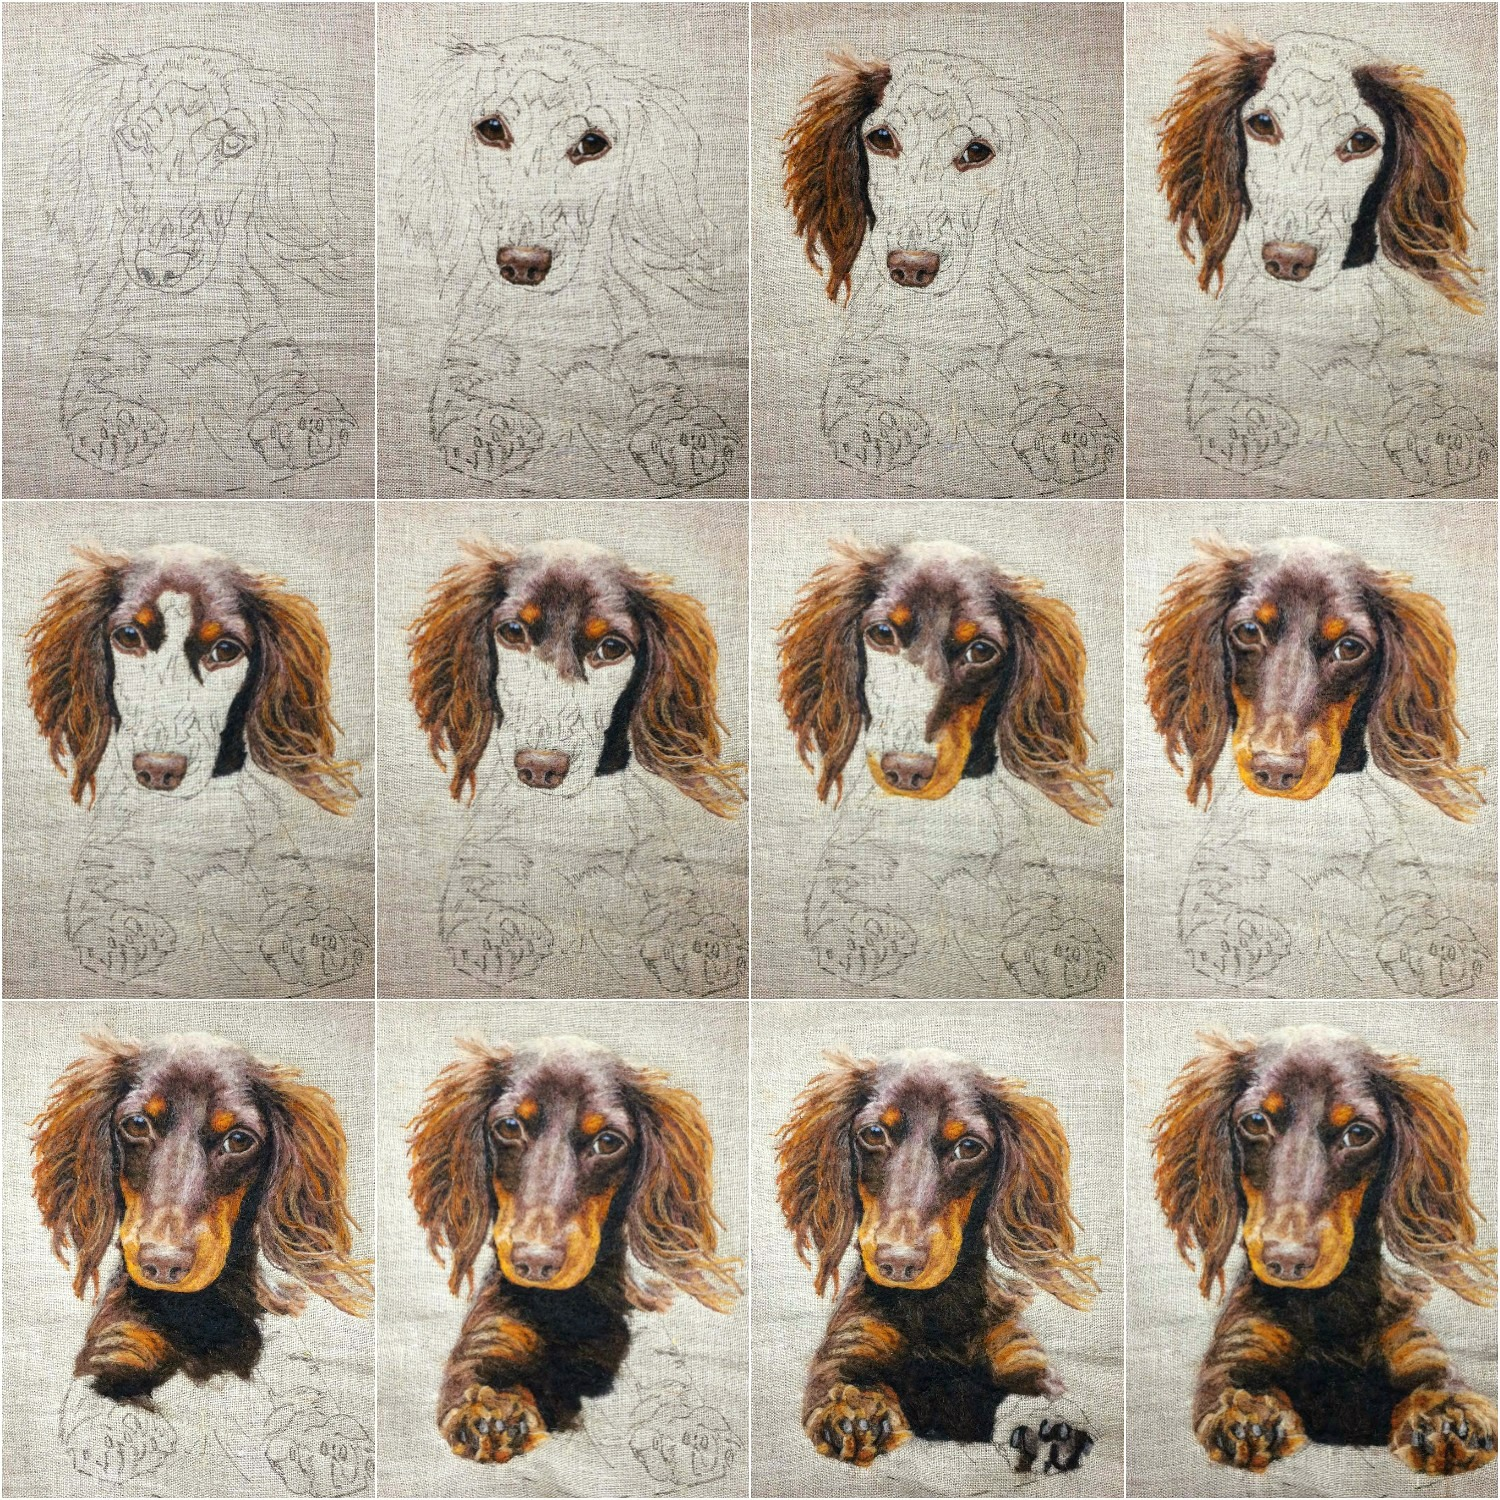 doxie progression collage.jpg